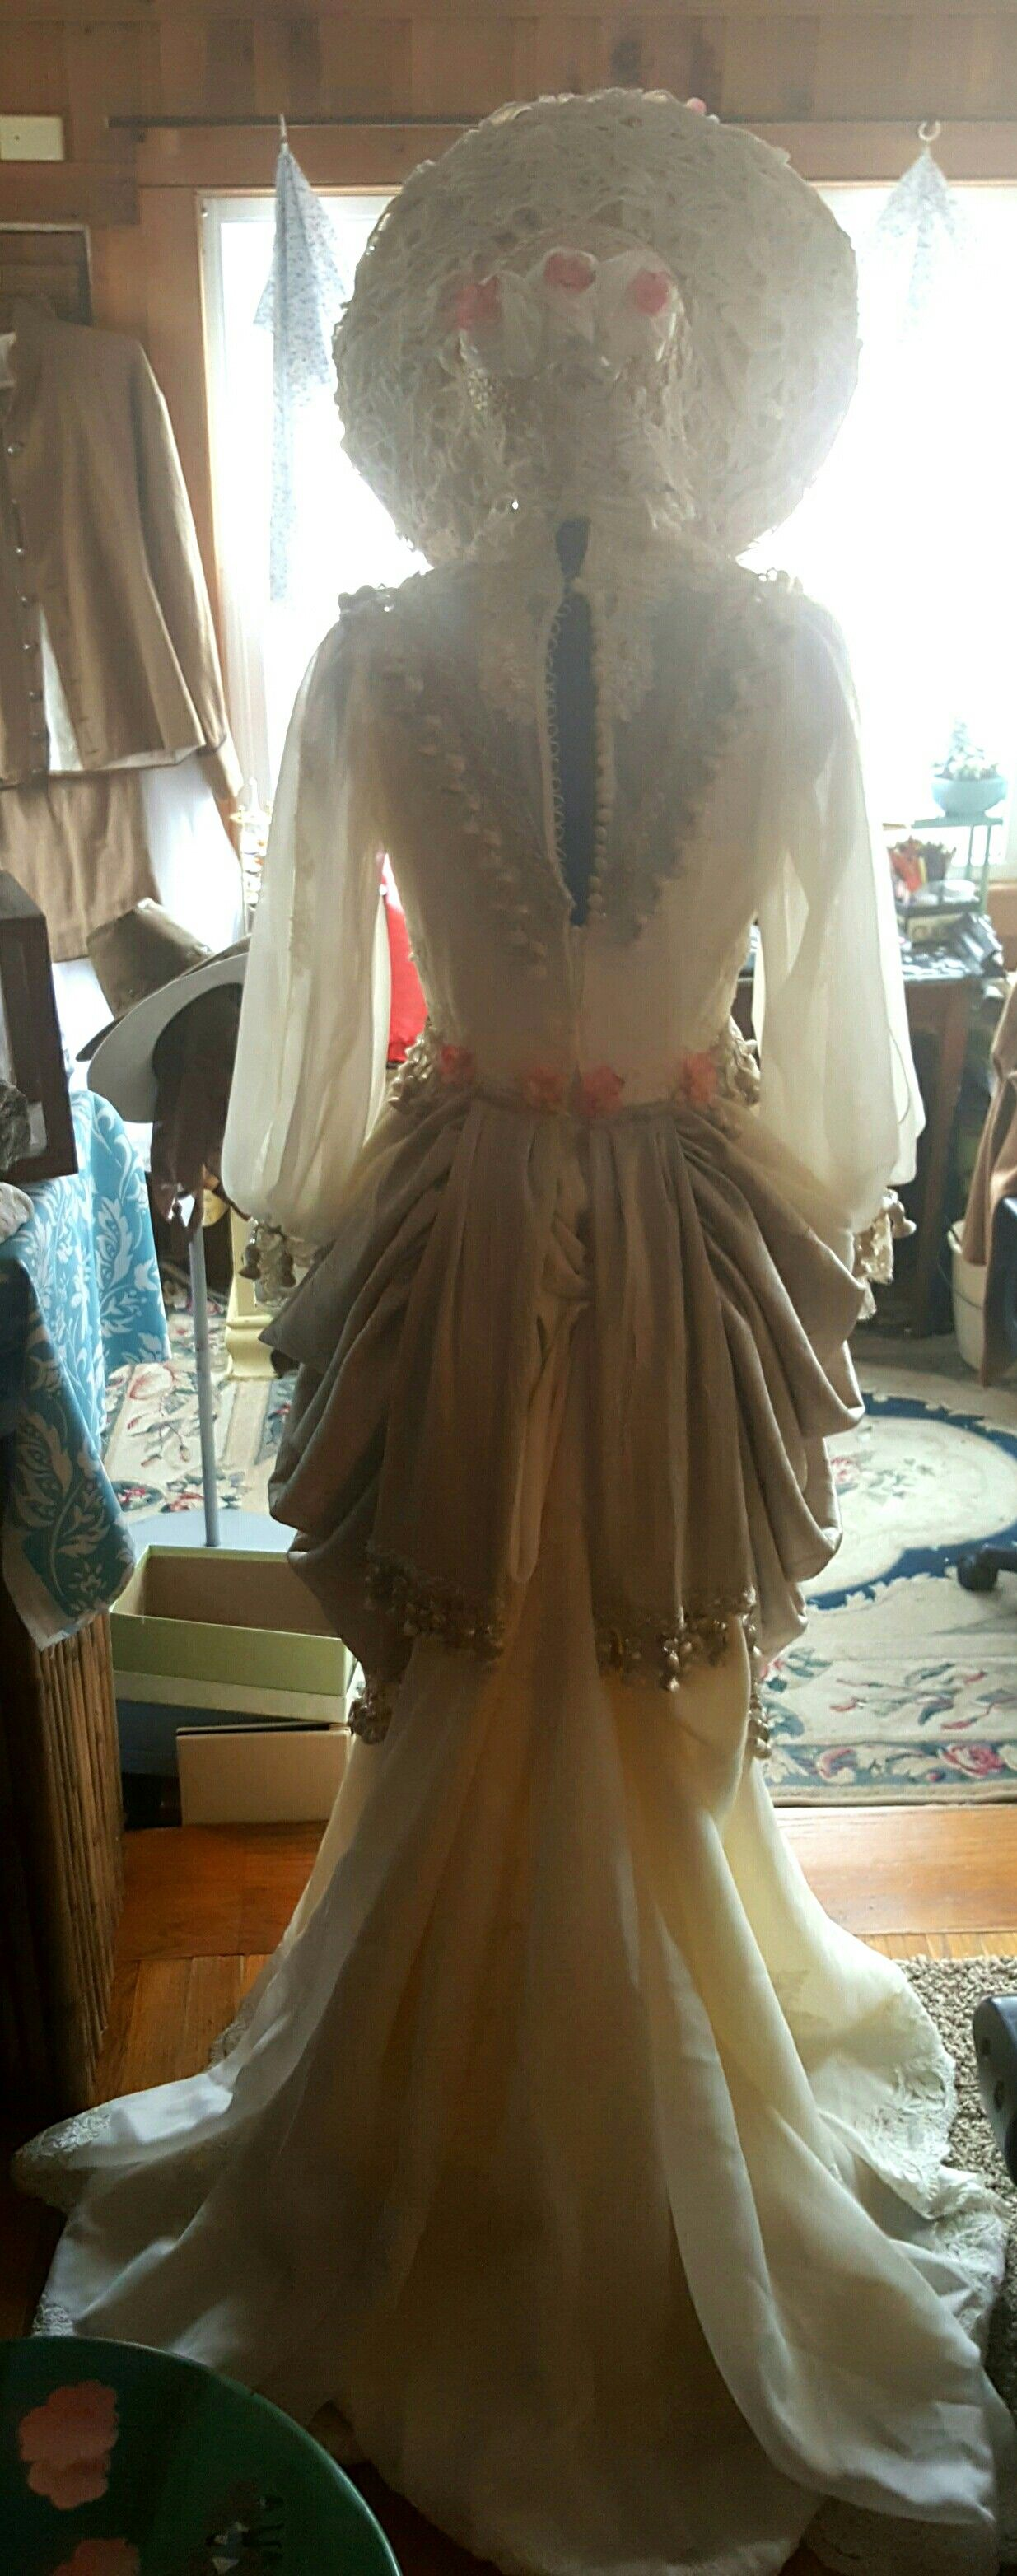 Bsck view - Refashioned an old wedding gown into a post Civil War Southern Belle costume. We'll have a full hoop underneath and ribbon ties on the bonnet